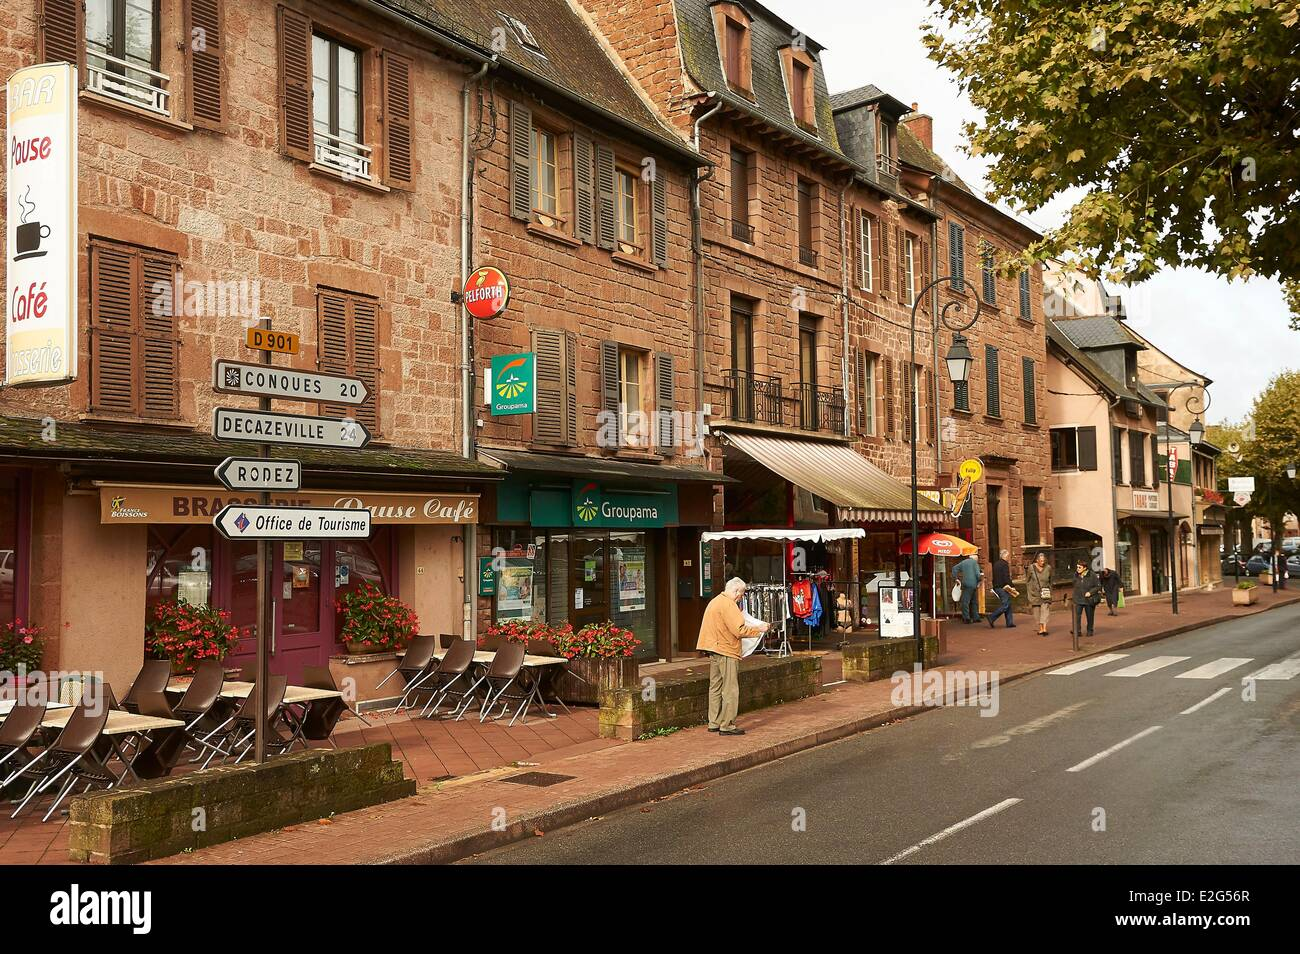 france aveyron marcillac vallon street view stock photo 70426127 alamy. Black Bedroom Furniture Sets. Home Design Ideas